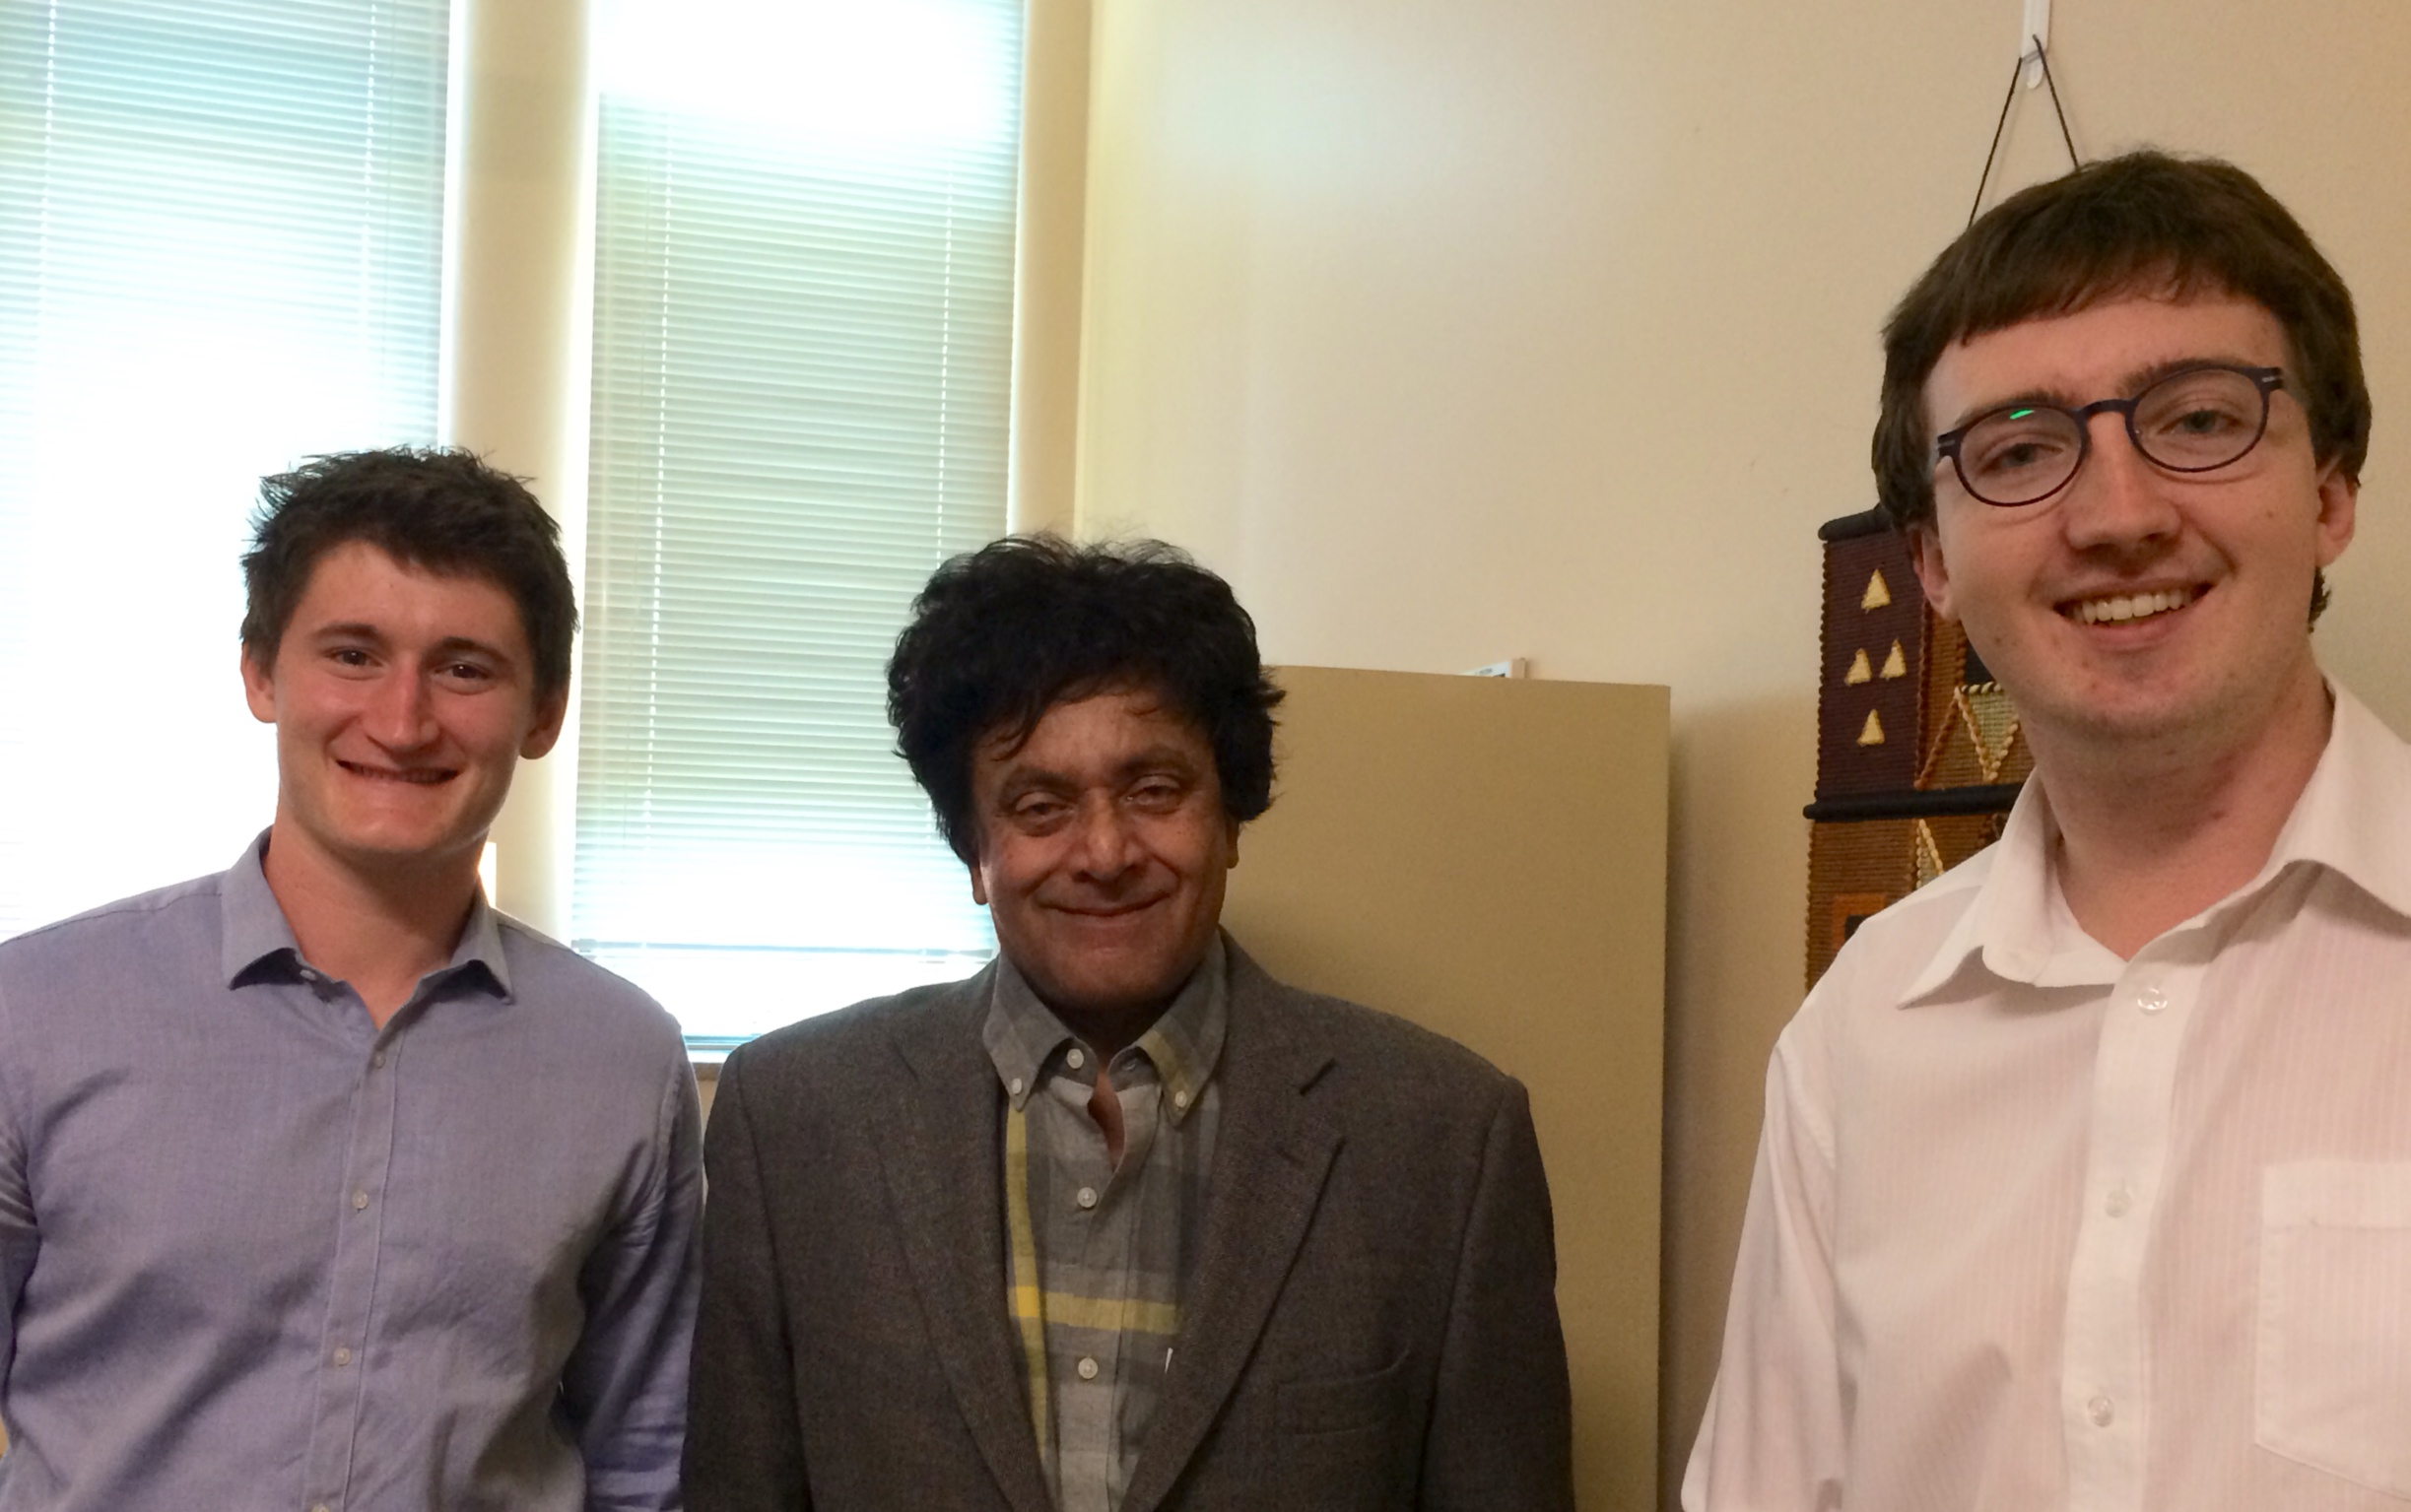 Professor Ratnapala, pictured with the interviewers